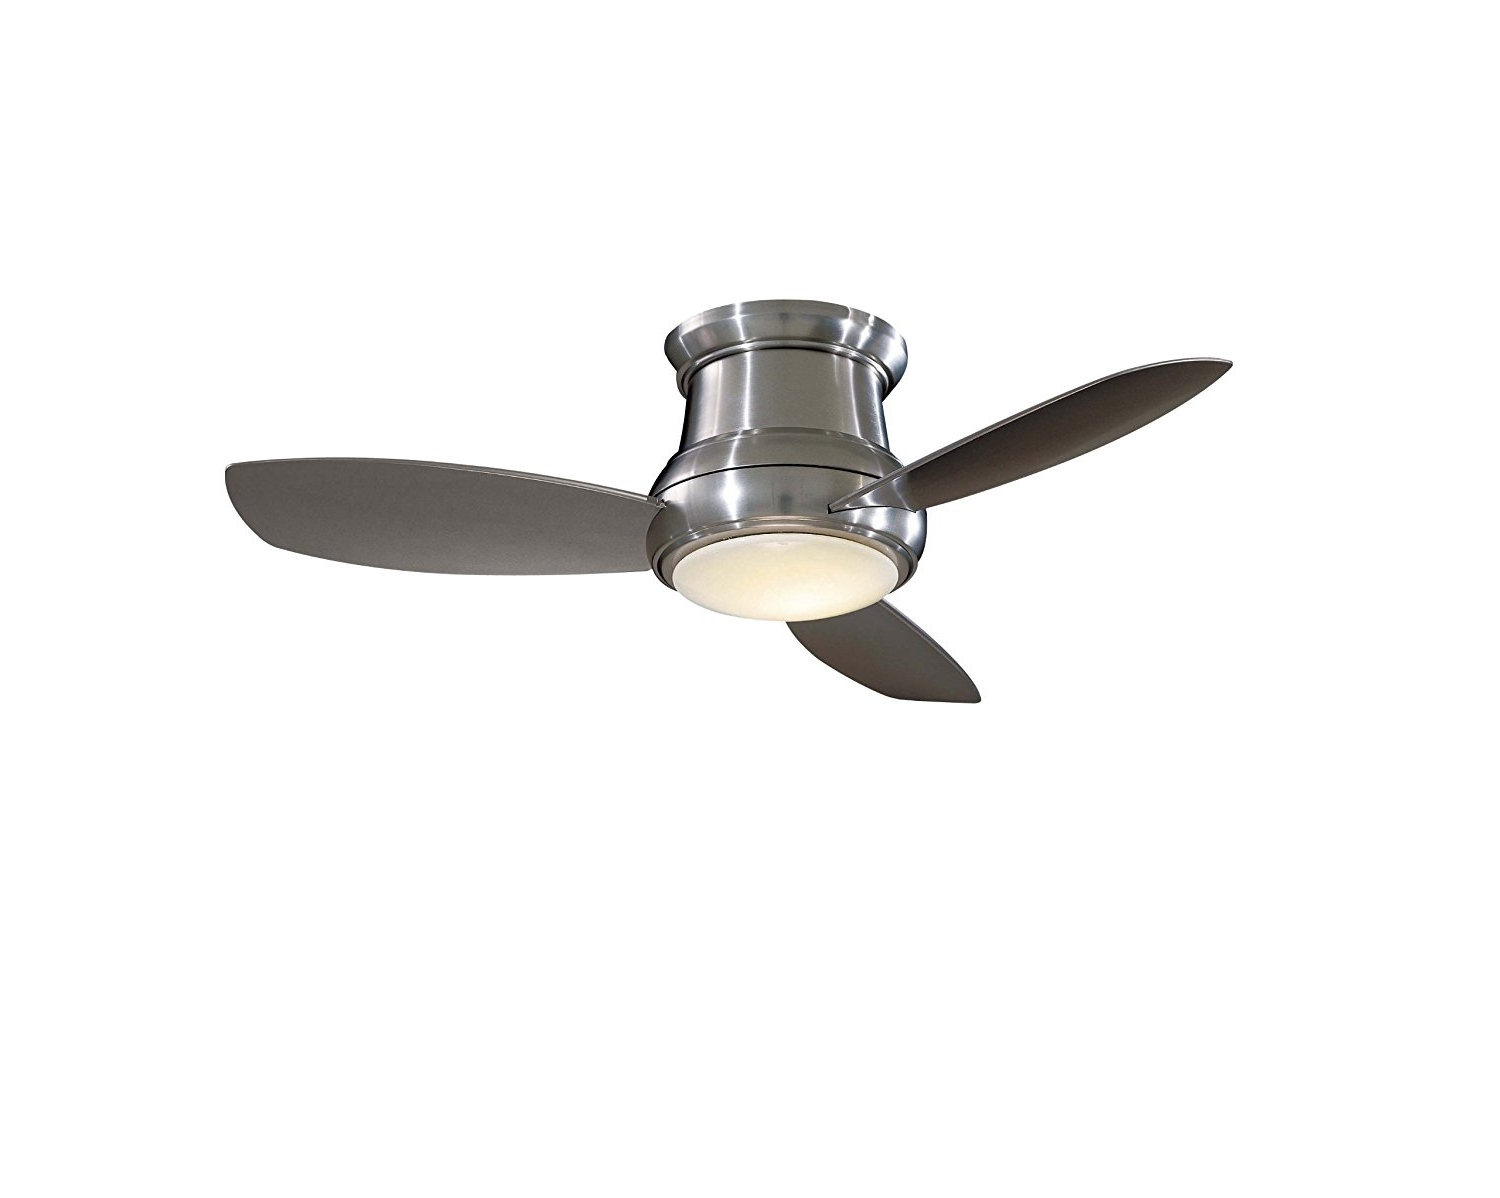 Ceiling Fan: Captivating Flush Mount Ceiling Fan With Light Ideas 32 With Regard To Most Current Outdoor Ceiling Fans For 7 Foot Ceilings (View 5 of 20)